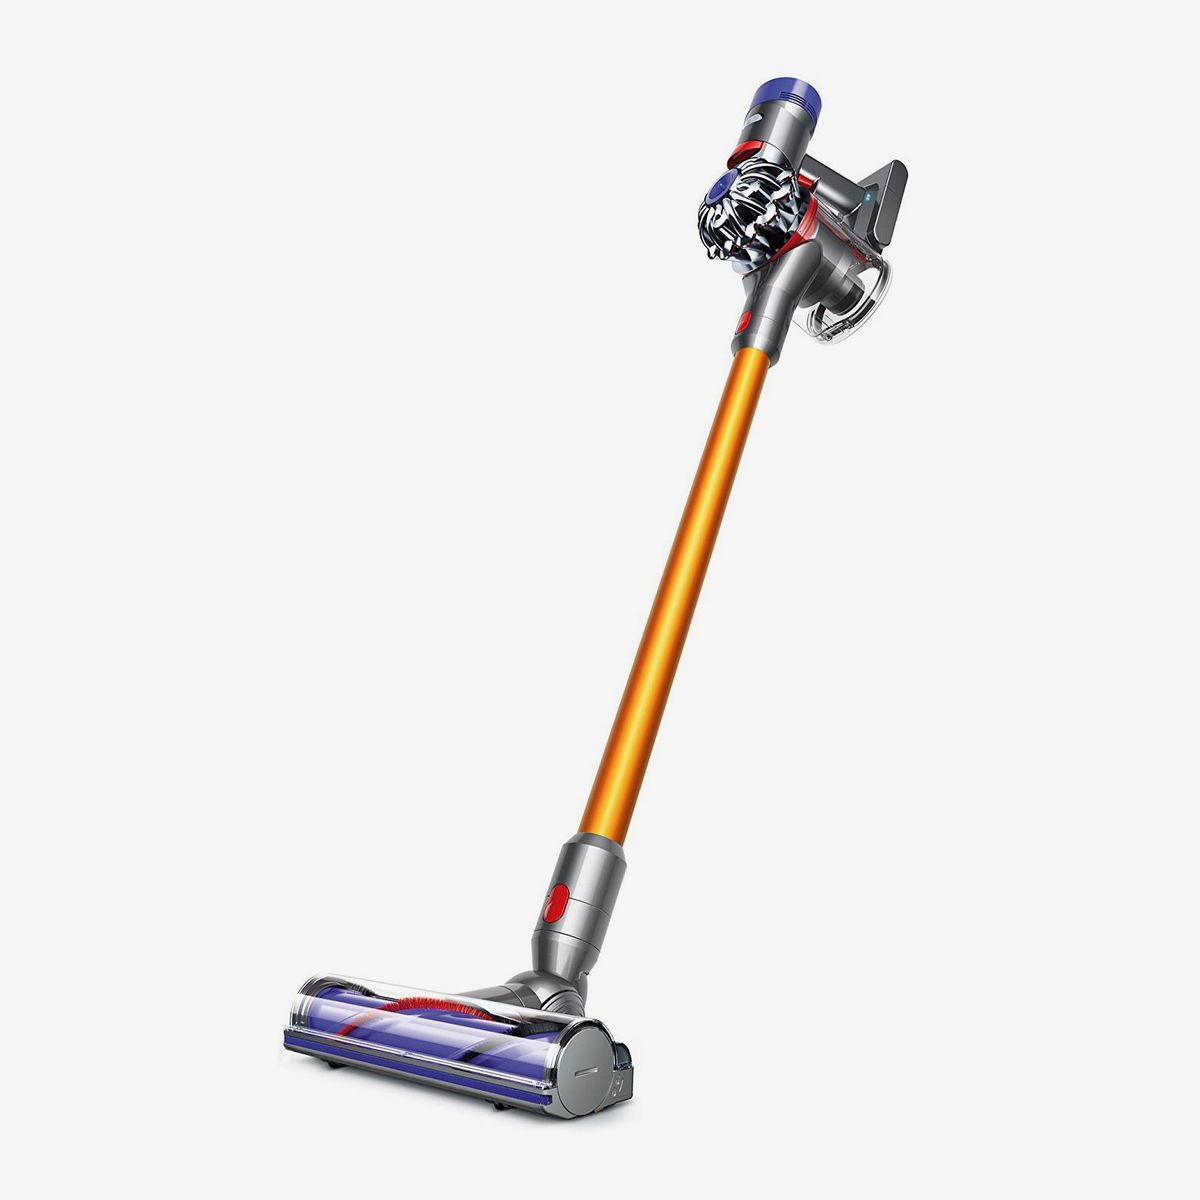 15 Best Vacuums For Pet Hair 2021 The